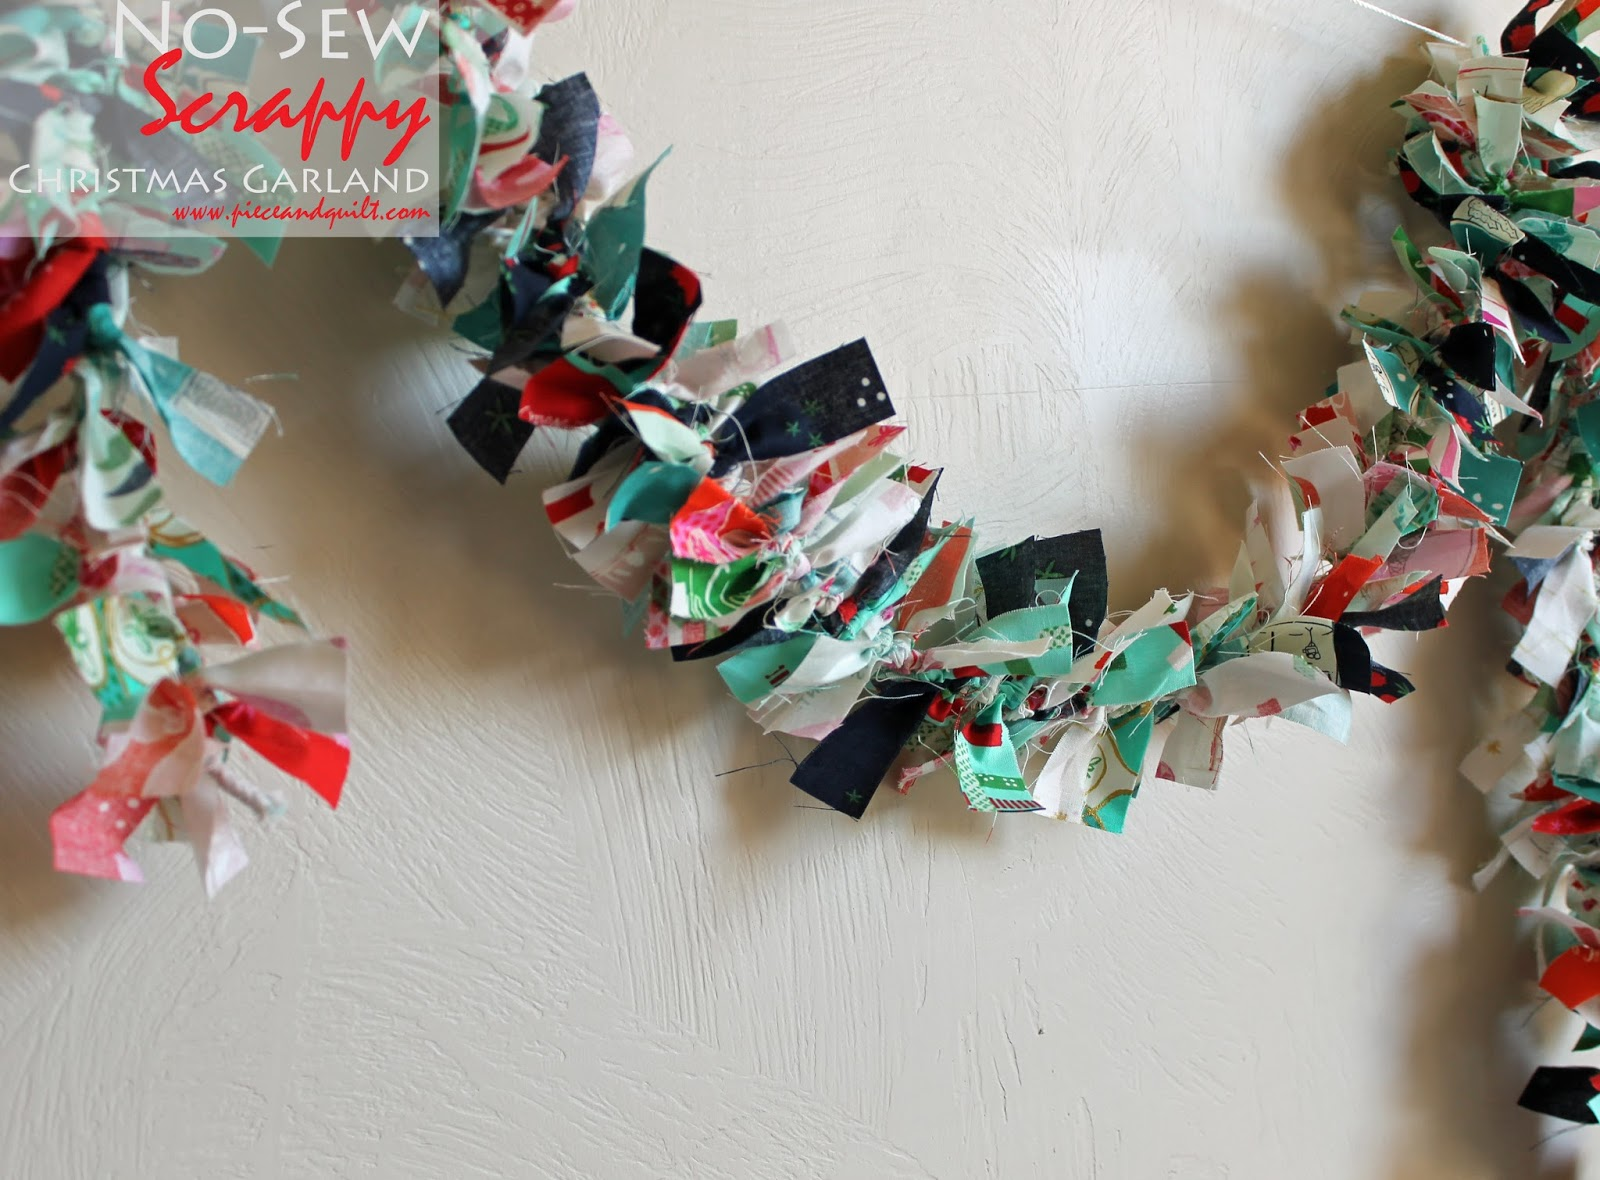 Piece N Quilt: How to: Simple No-Sew Christmas Garland